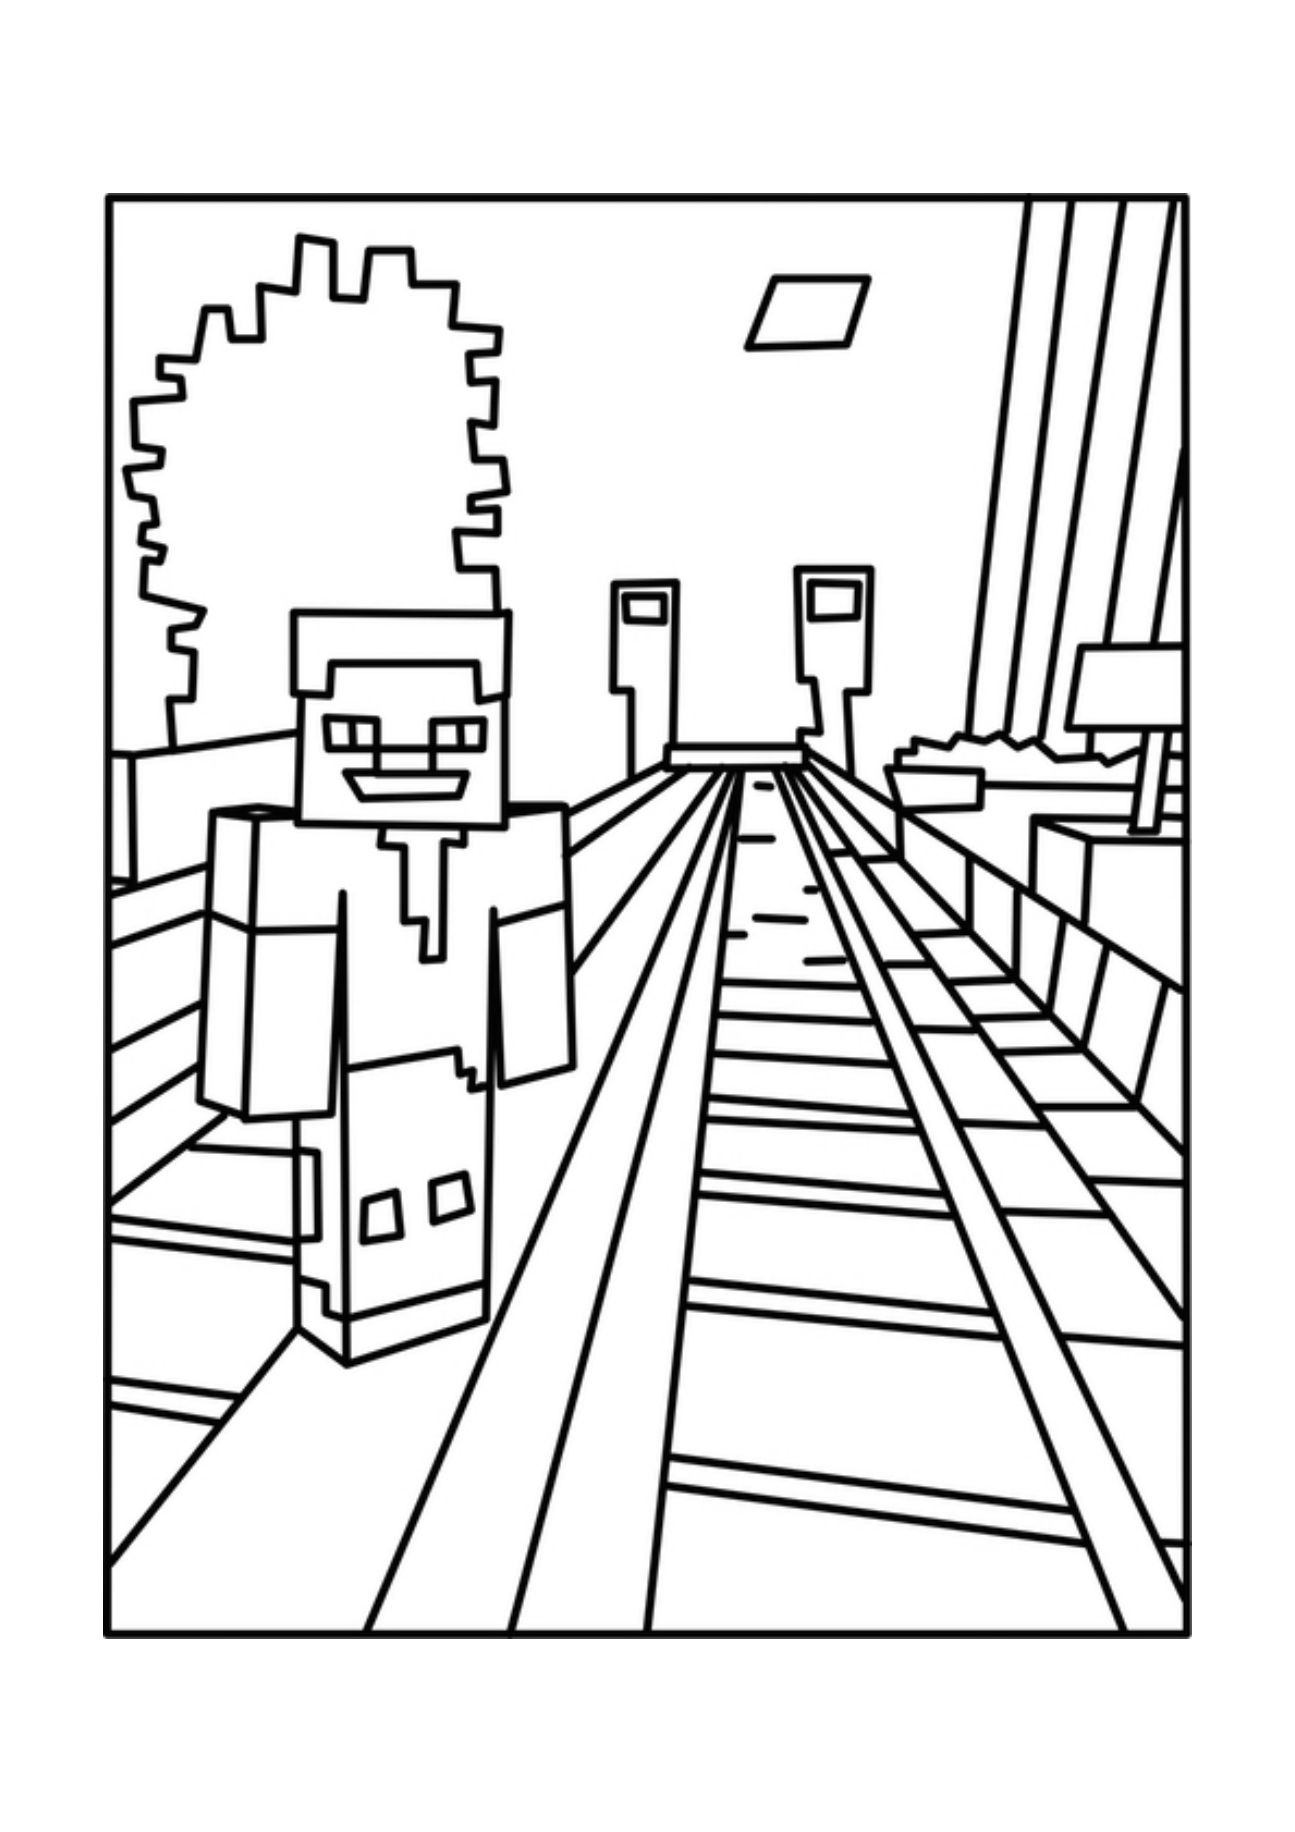 Printable Minecraft Coloring Page